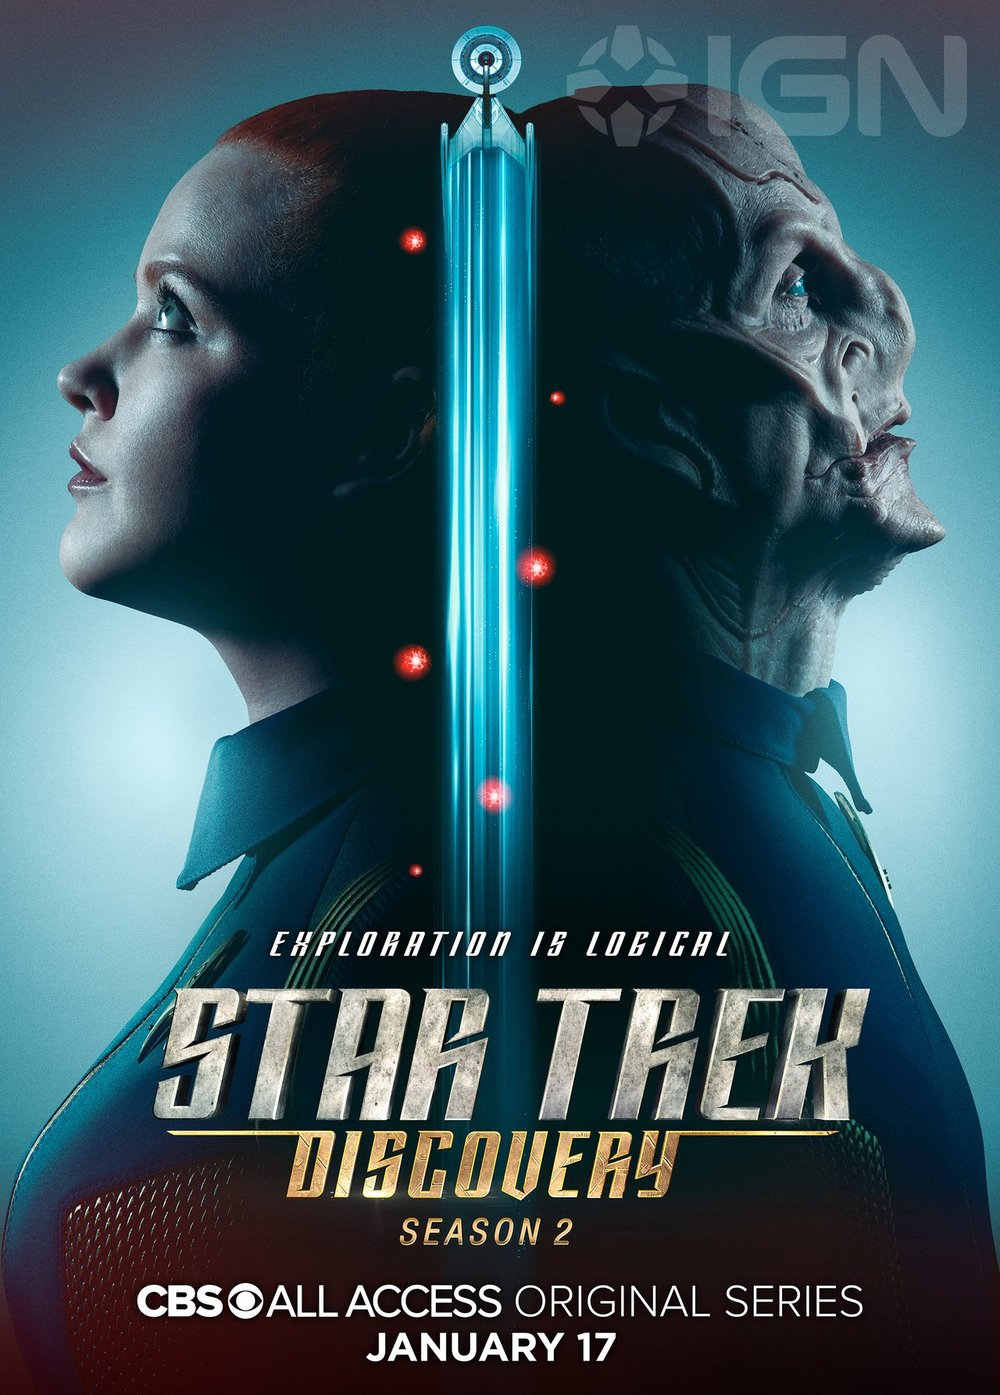 star-trek-discovery-featurette-focuses-on-captain-pike-and-new-character-posters5